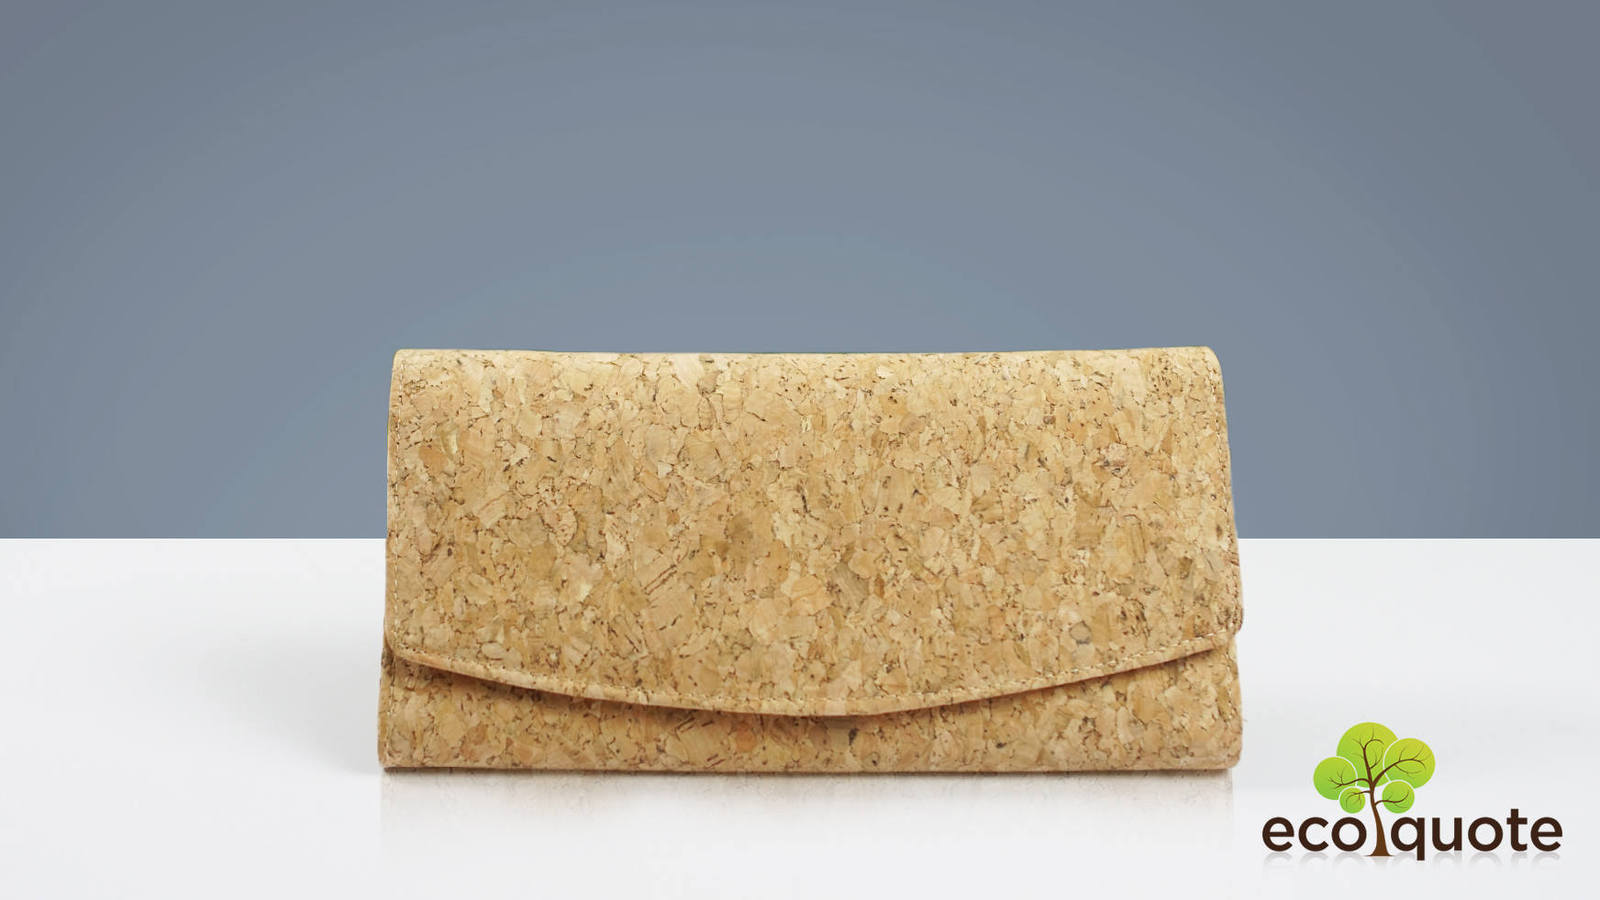 EcoQuote EcofriendlyTri Fold Long Wallet Handmade Cork Material Great for Vegan